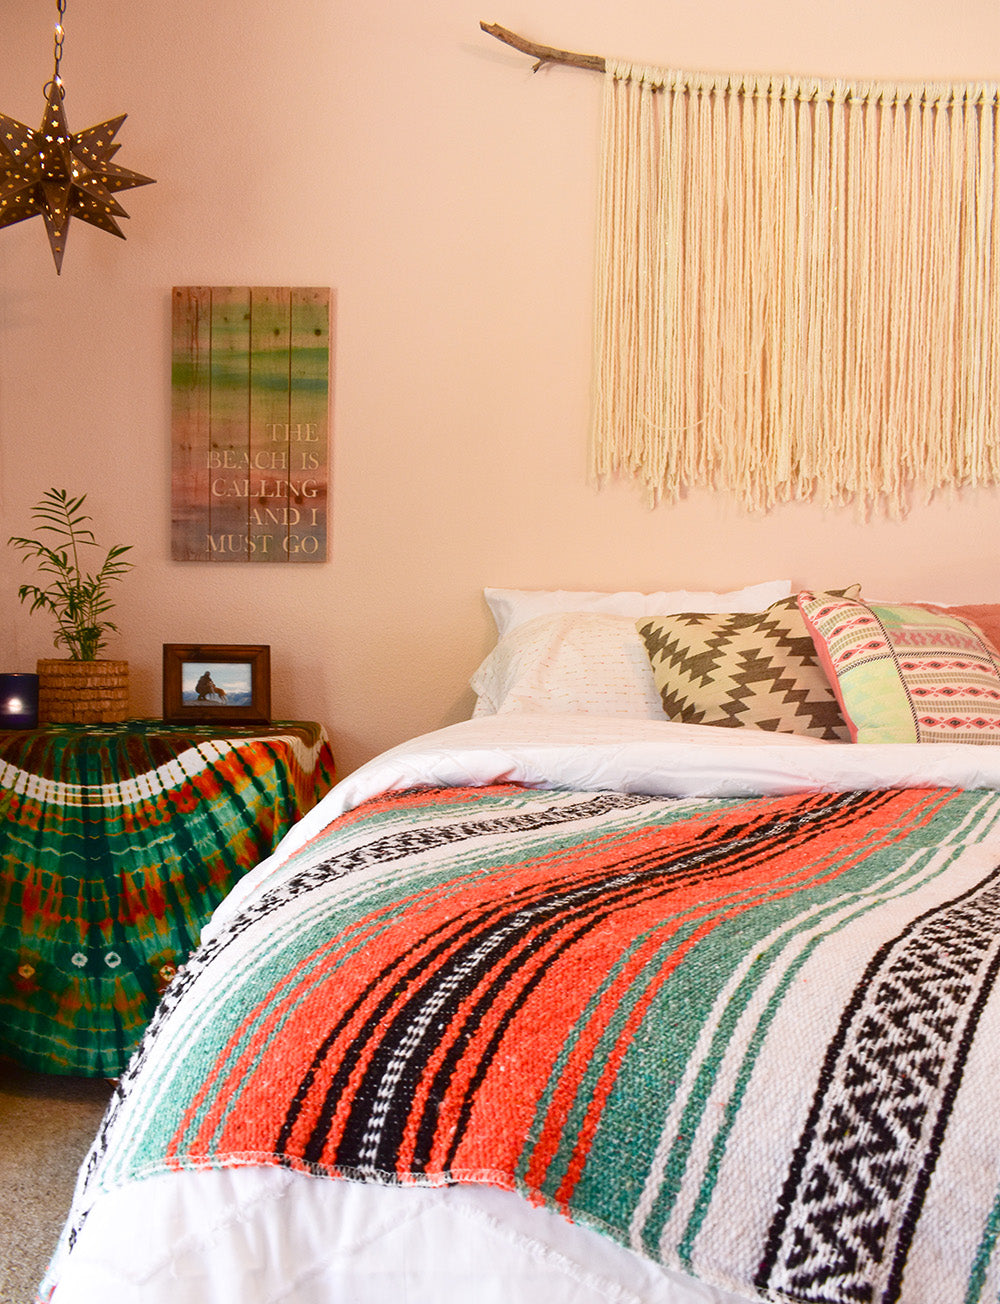 Beachy summer style for the boho bedroom. Tropical color. Patterns & Texture. Drift Wood. Tie-Dye. Summer 2018 is set.